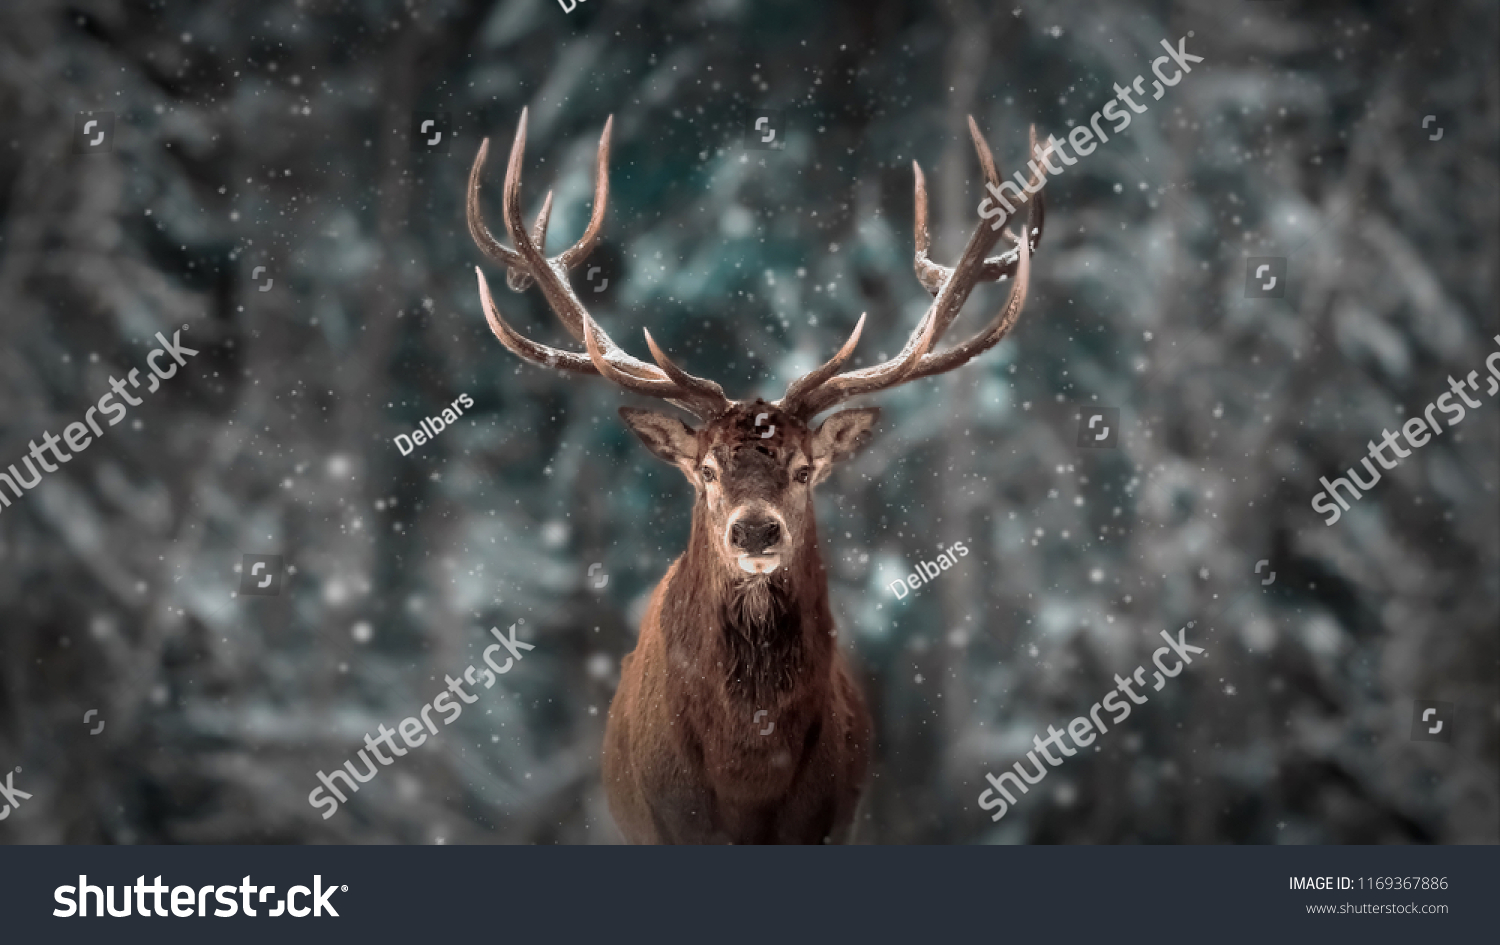 Noble deer male in winter snow forest. Artistic winter christmas landscape. #1169367886